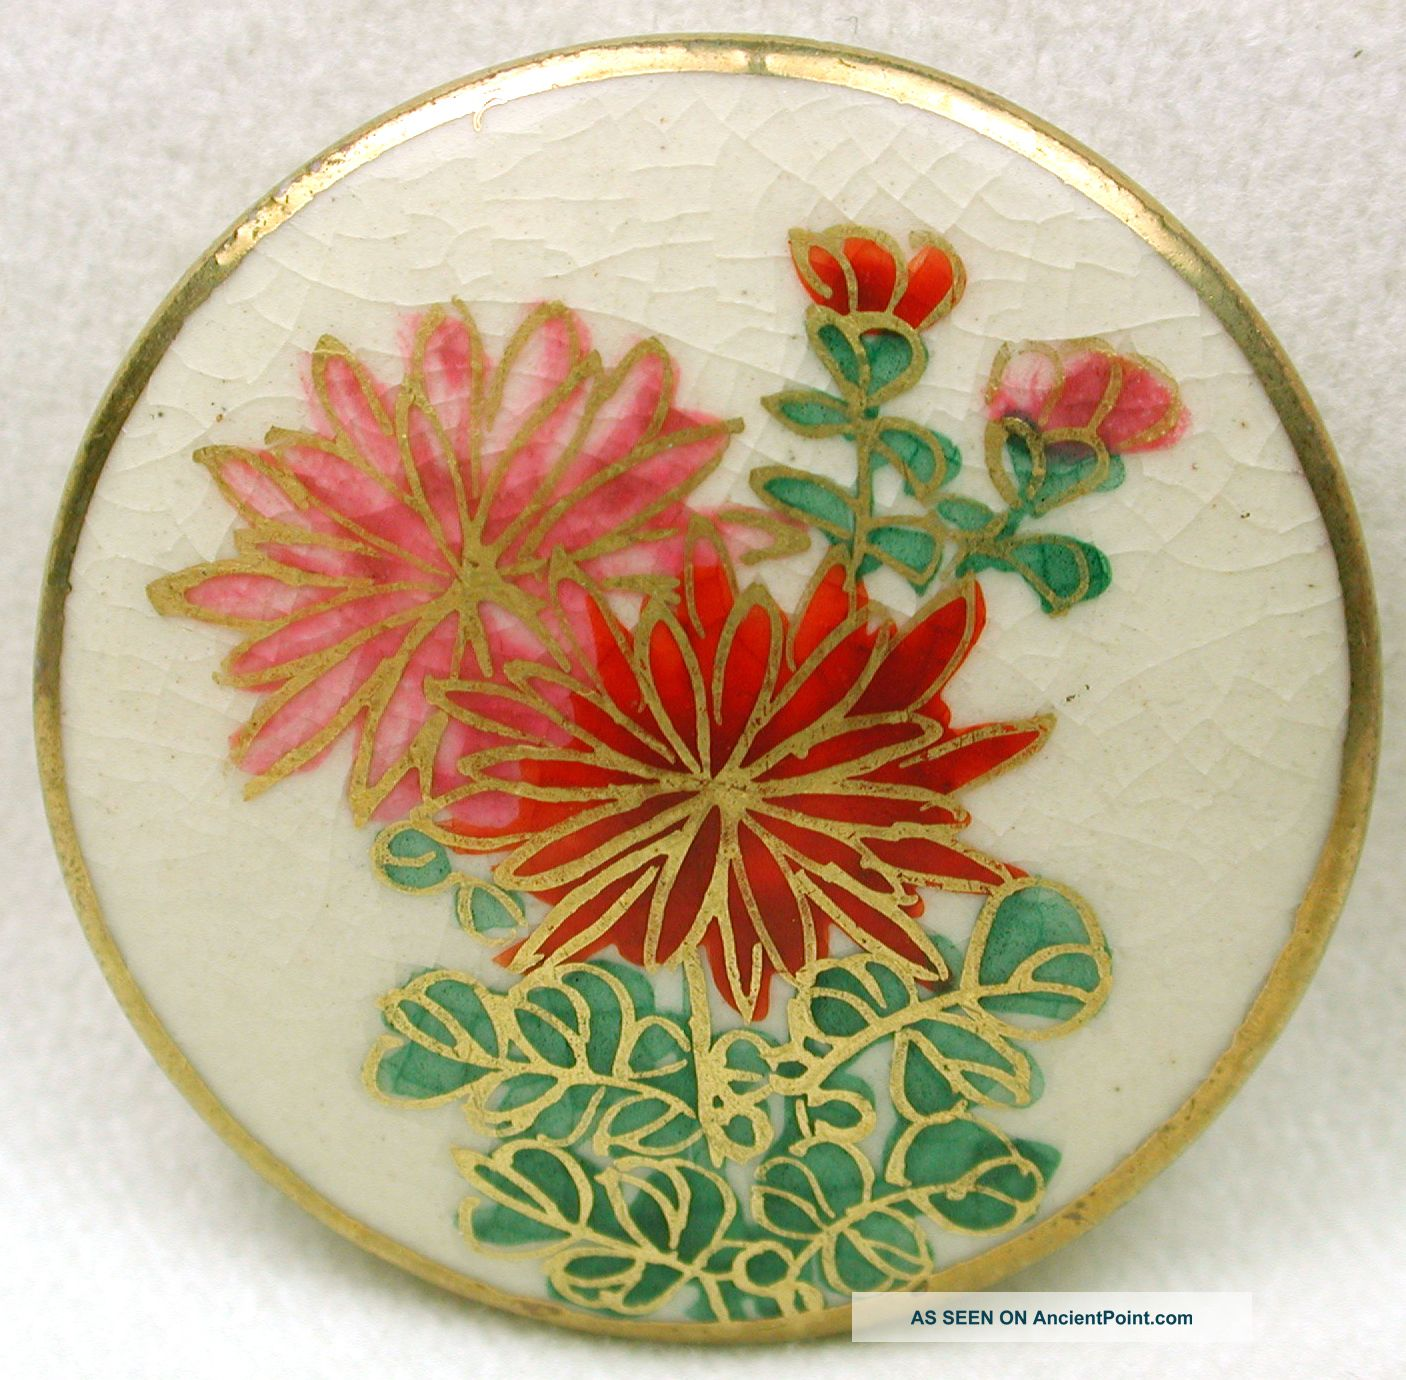 Vintage Satsuma Button Pink & Red Floral Design W/ Gold Accents 1 & 3/16 Inch Buttons photo